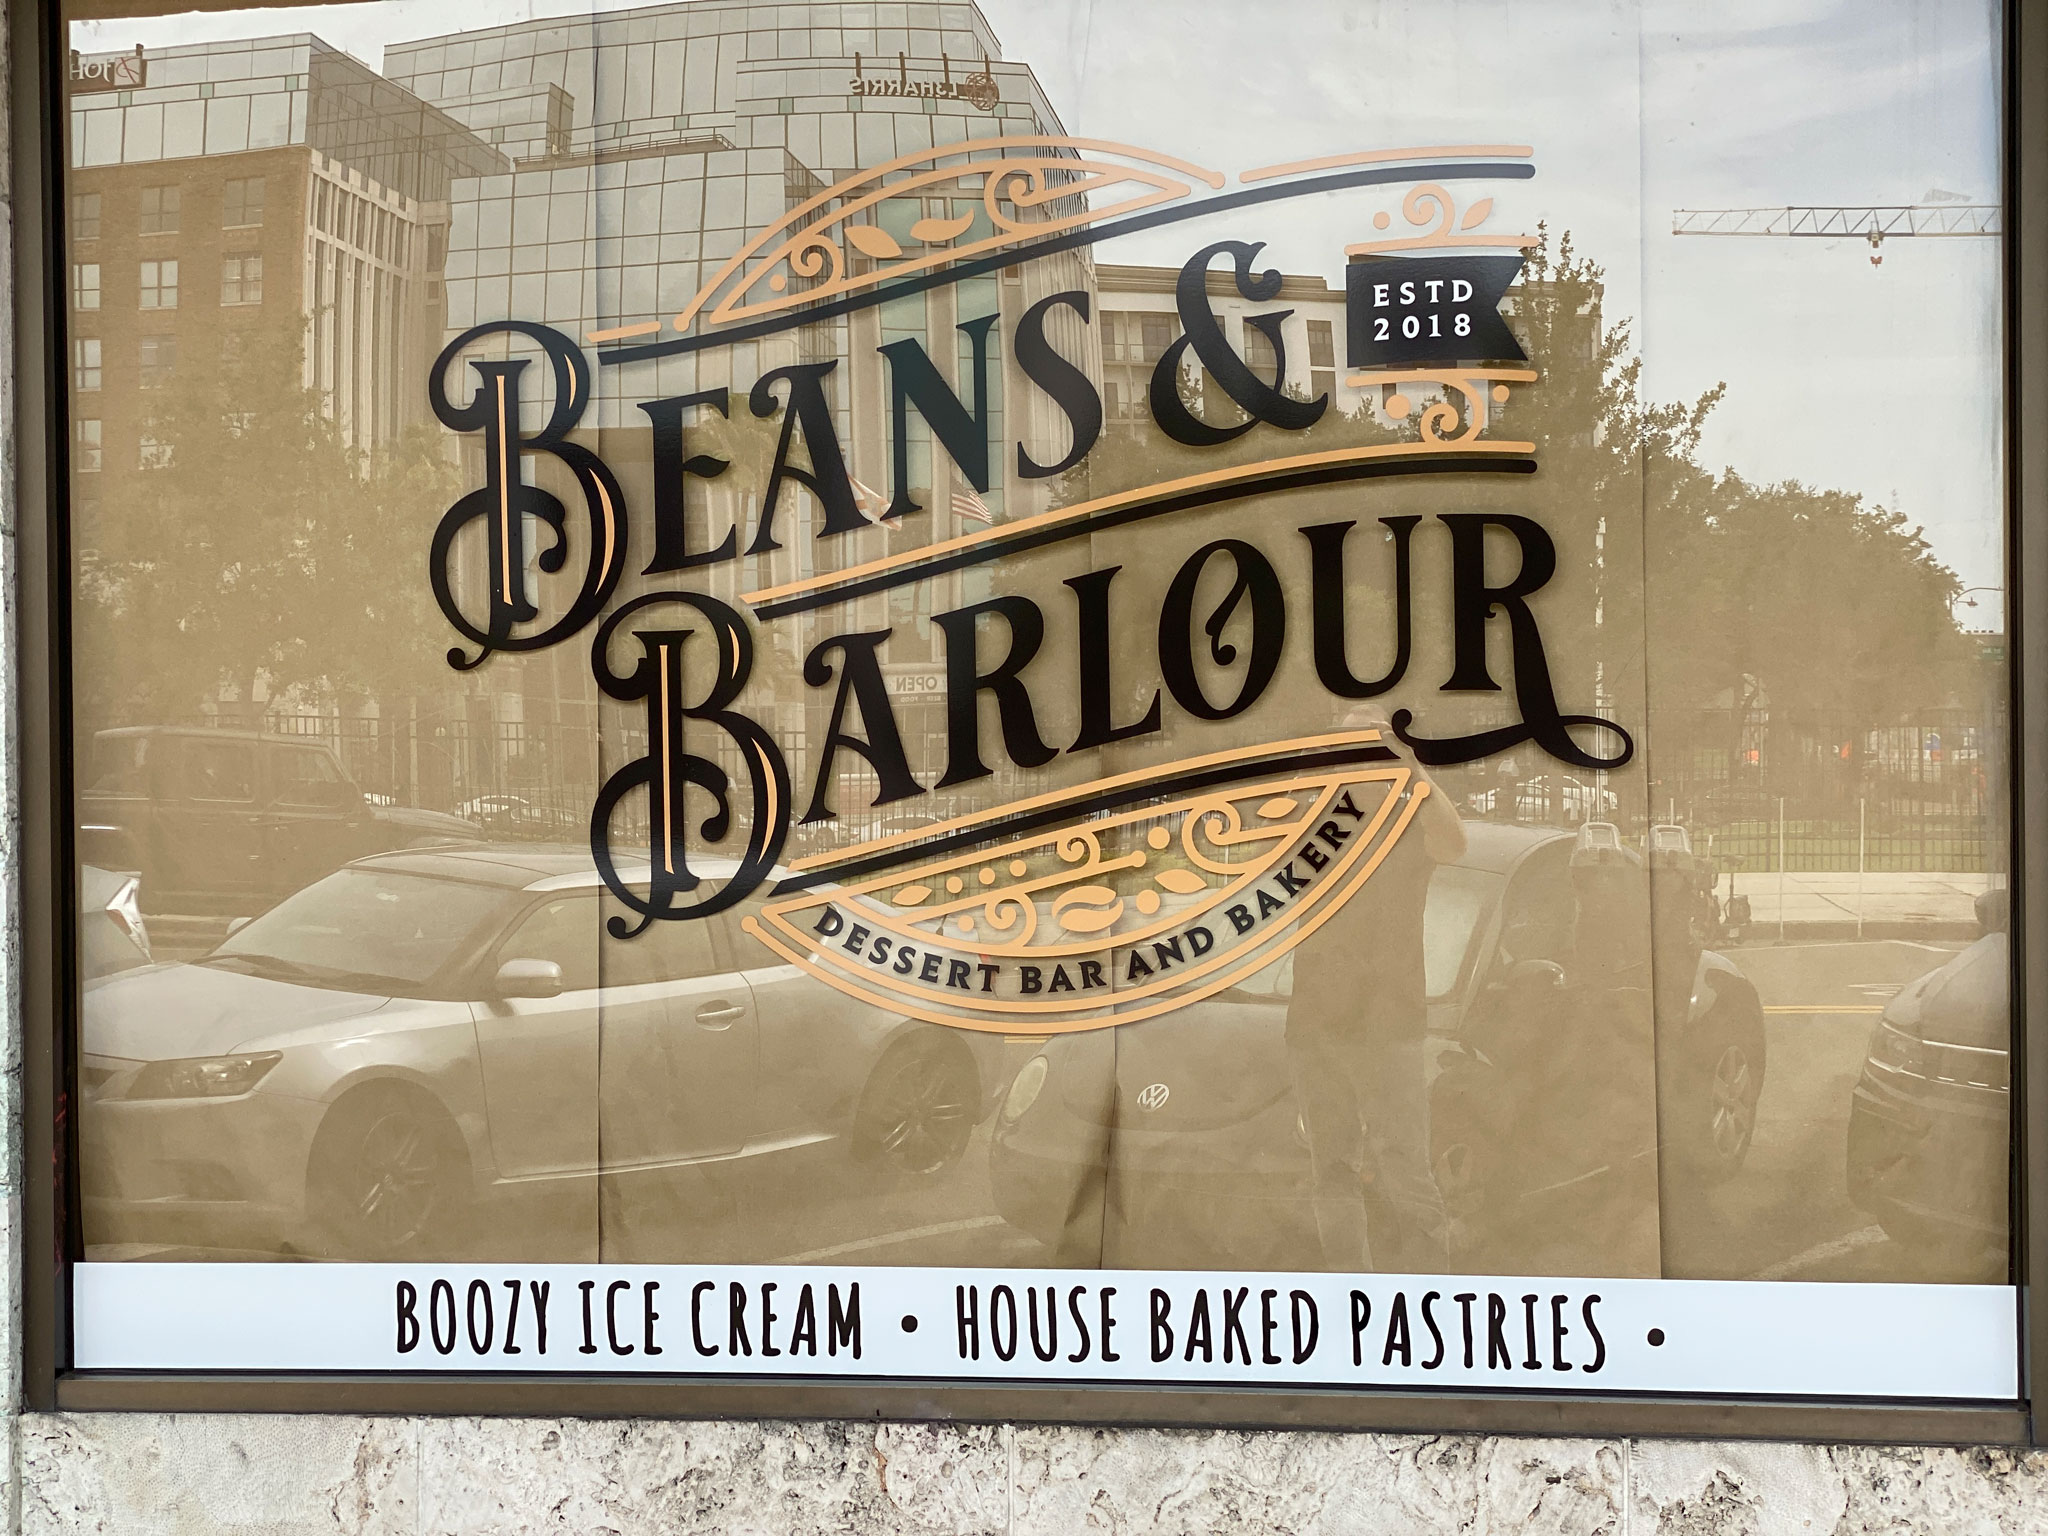 Beans & Barlour's New Location is ALMOST Ready to Open